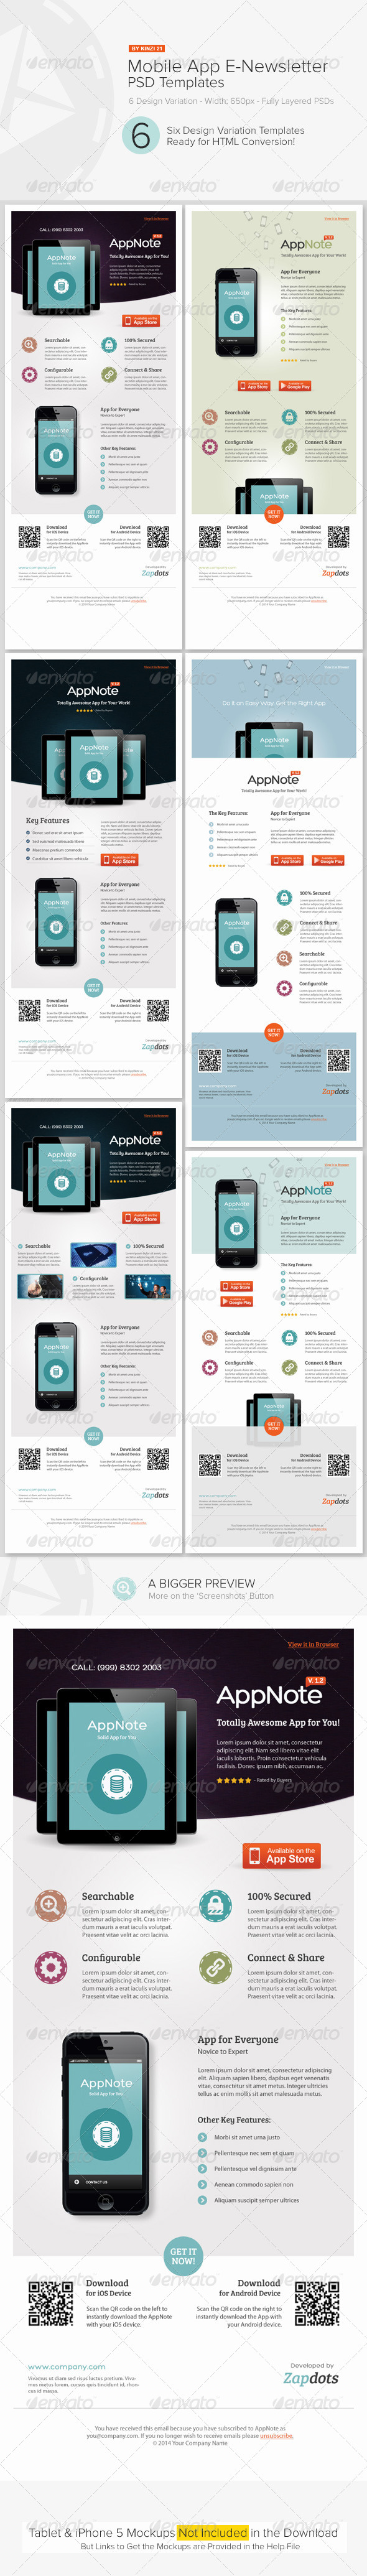 GraphicRiver Mobile App E-Newsletter PSD Templates 4915002